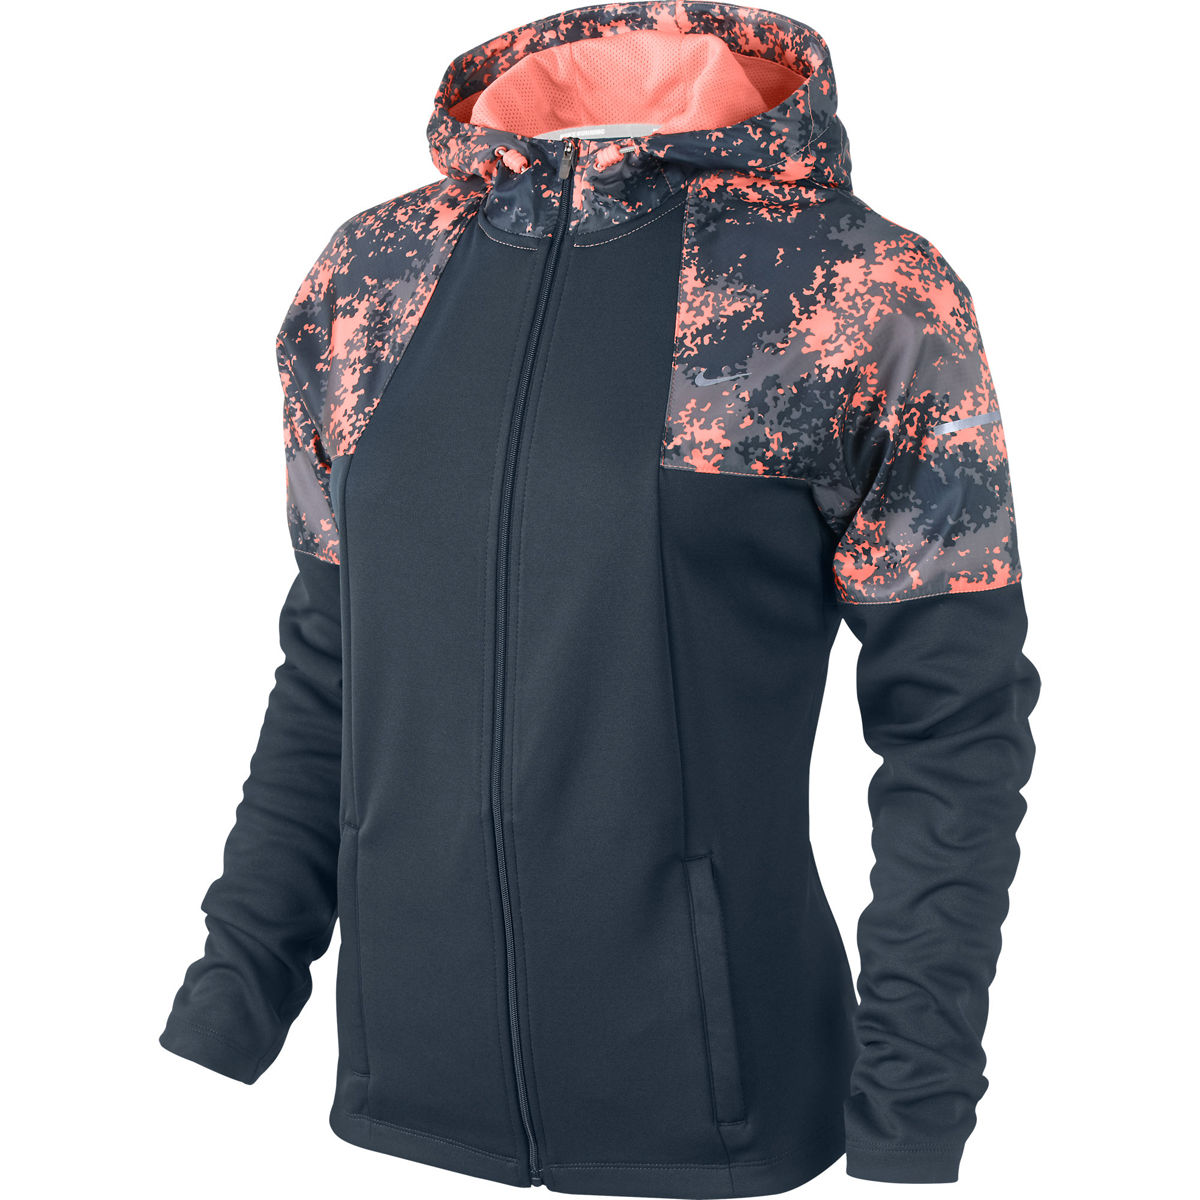 nike-ladies-fanatic-jacket-fa13-547379-455-PV